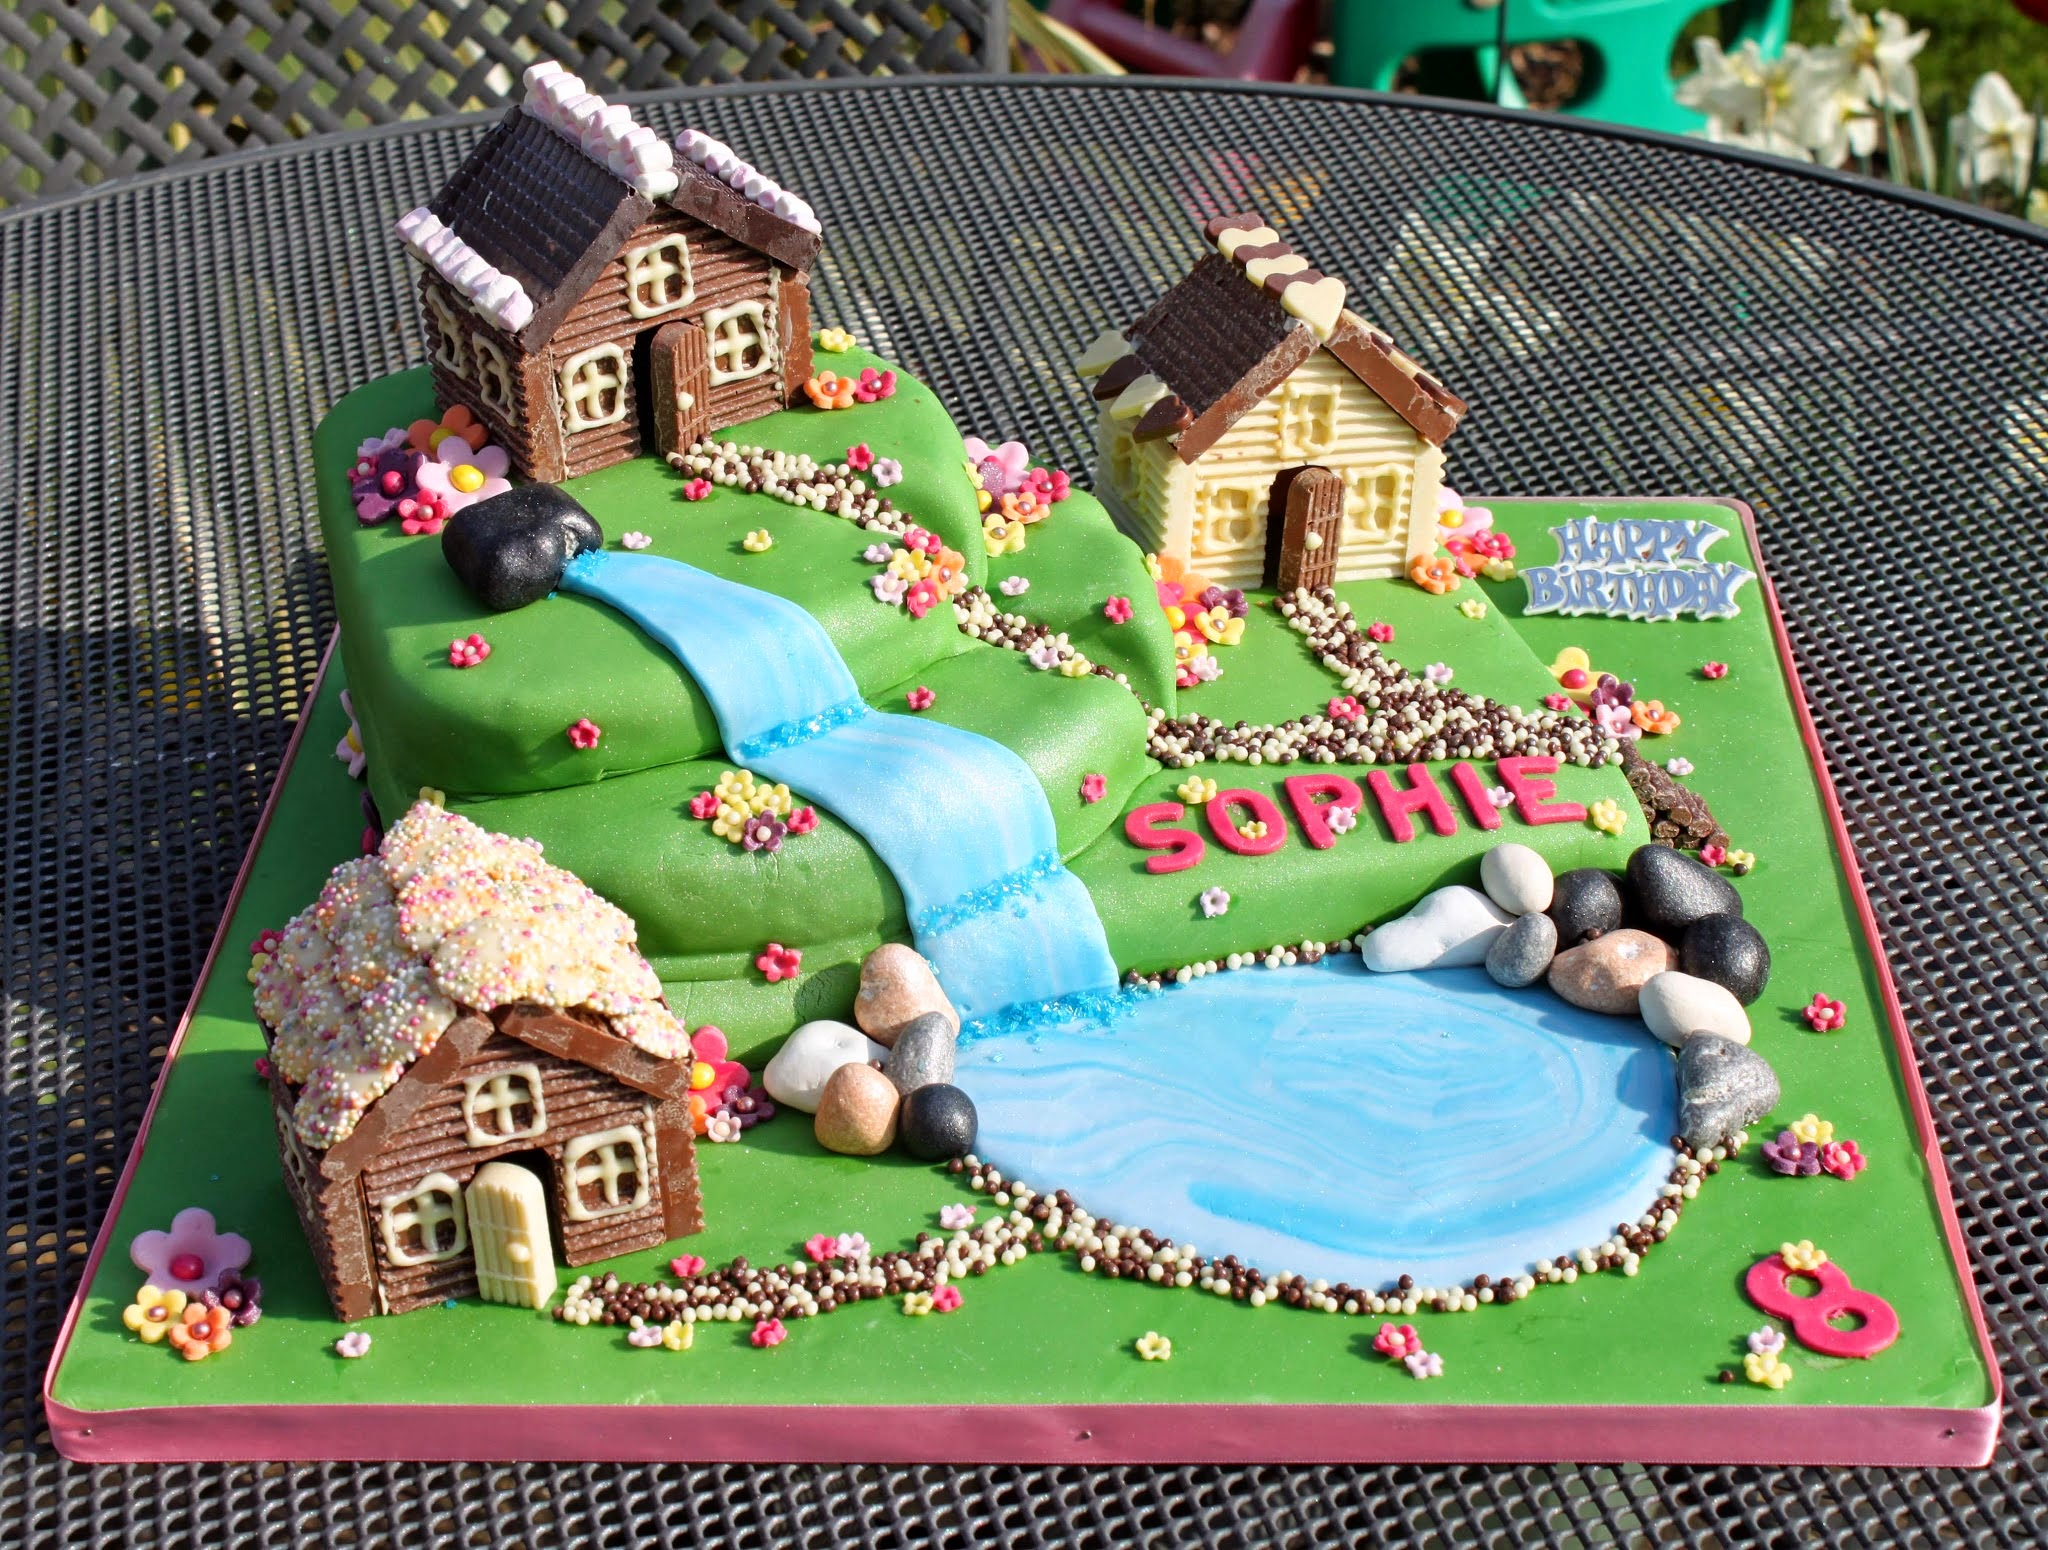 cake, alpine village, chocolate, chocolate house